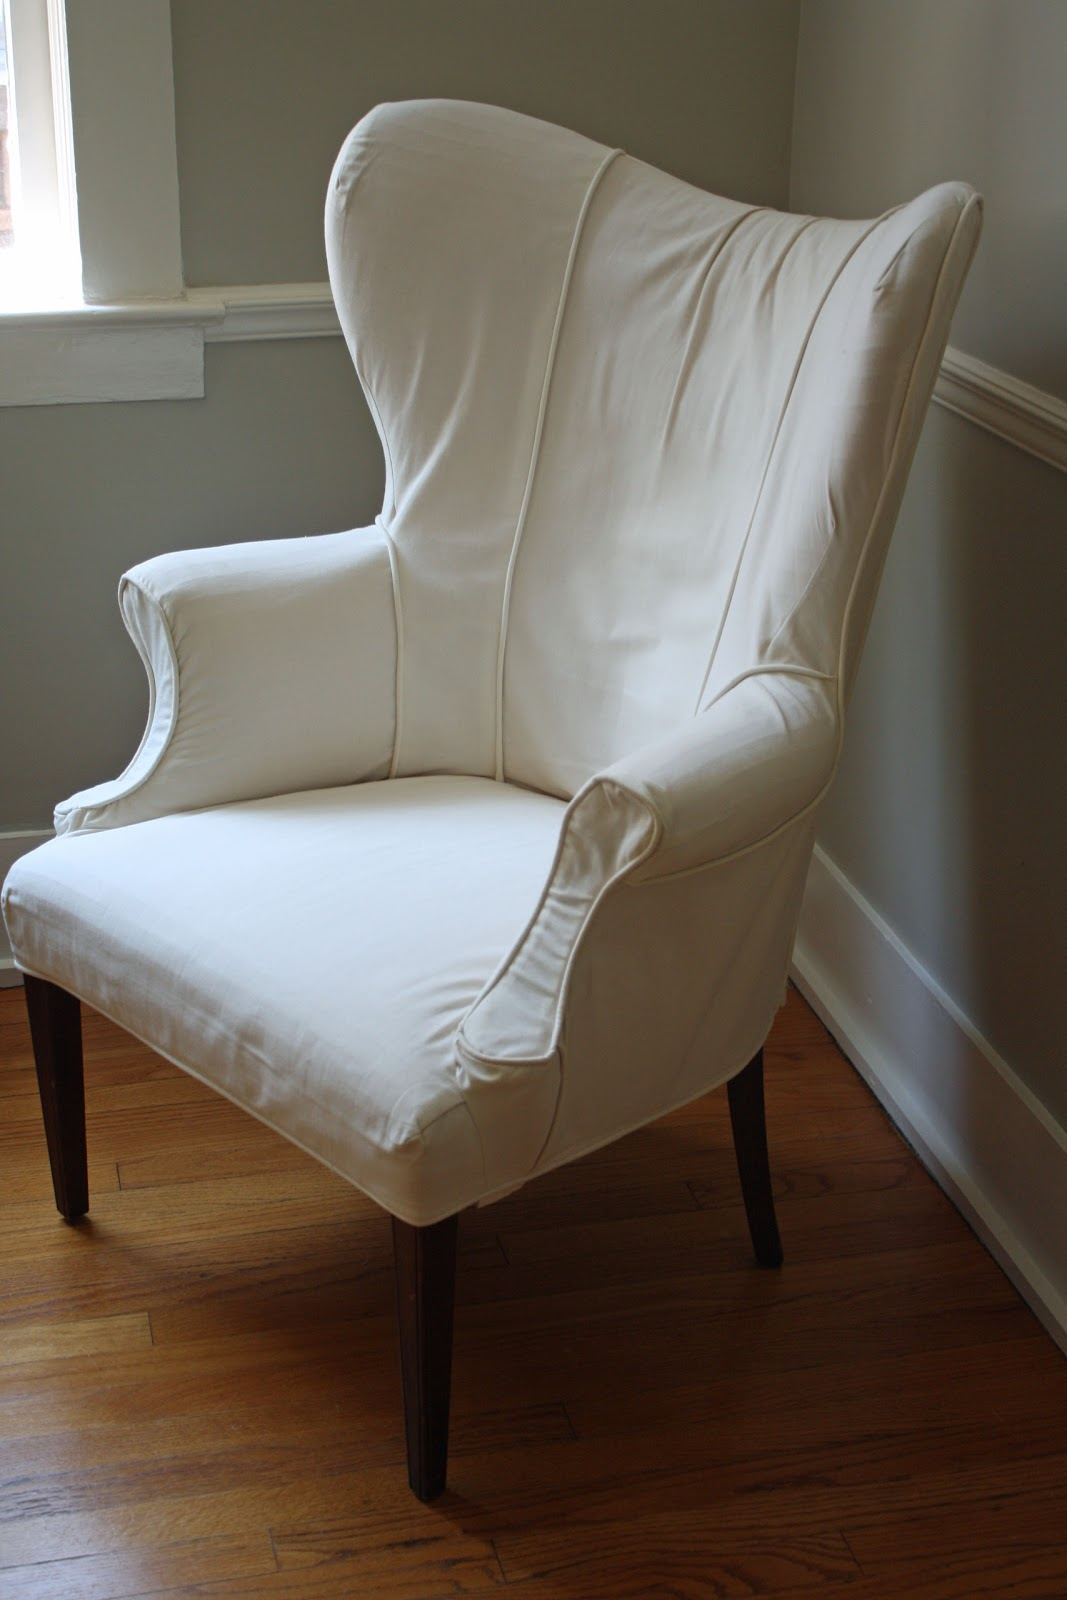 Chair Slipcovers Australia The Store Dwell And Tell Wing Chairs Are Here